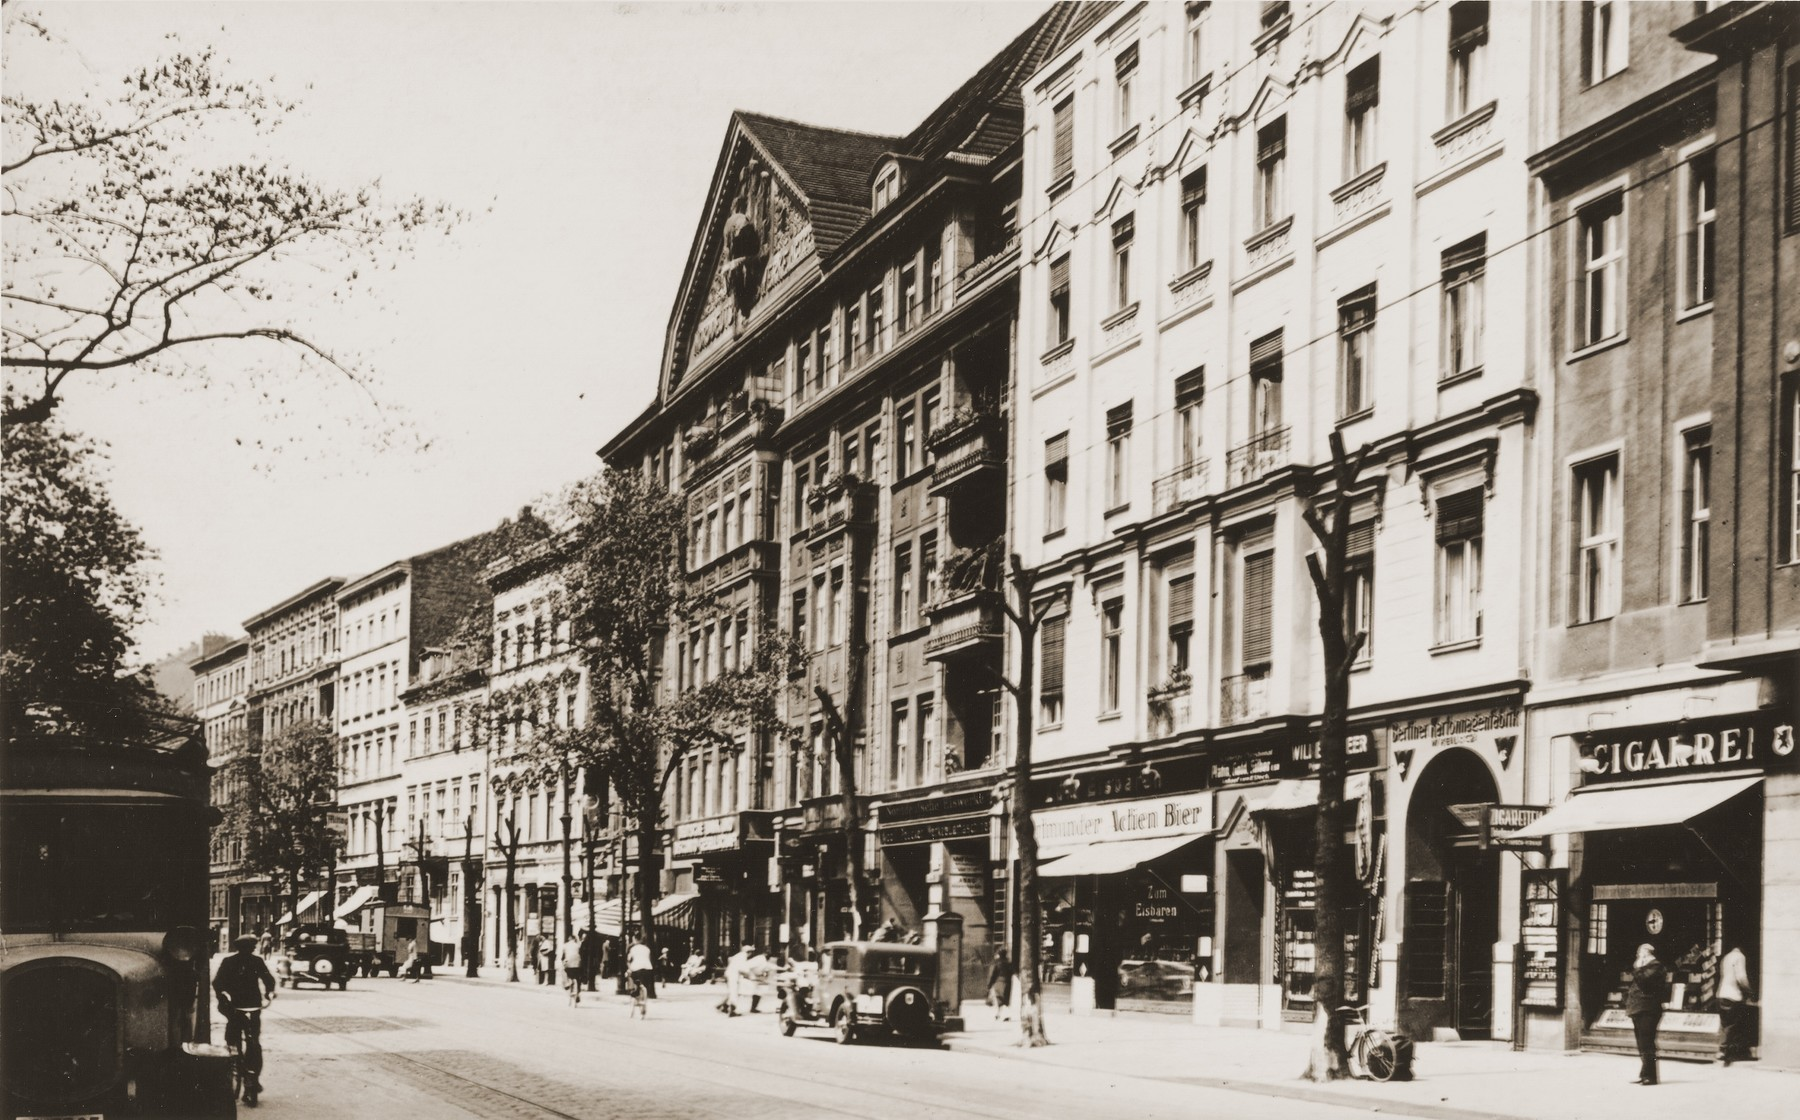 View of the commercial street in Berlin where Arthur Lewy's tobacco store was located.